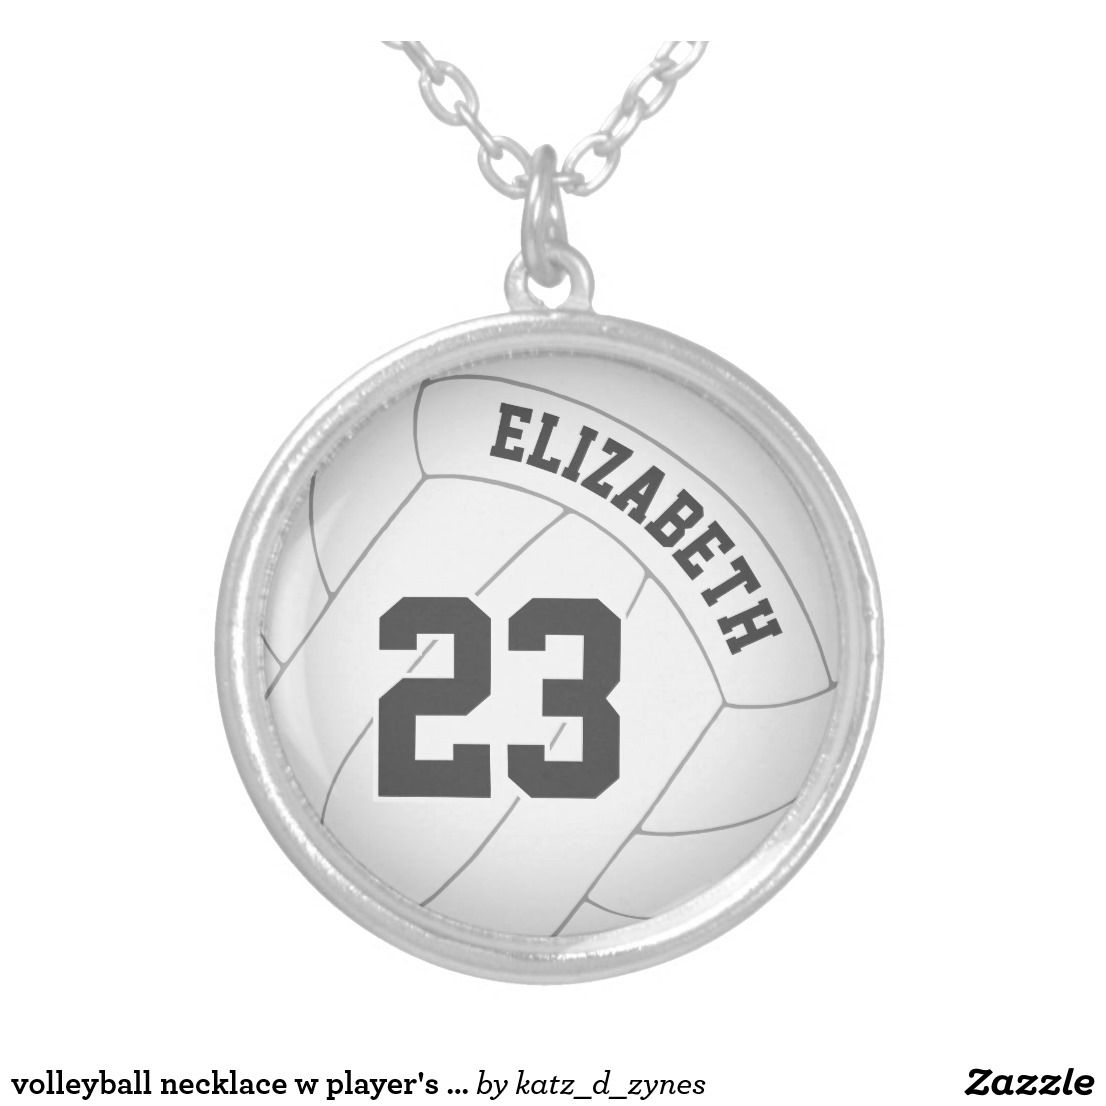 Volleyball Necklace W Player S Name Jersey Number Zazzle Com Volleyball Necklace Volleyball Jewelry Volleyball